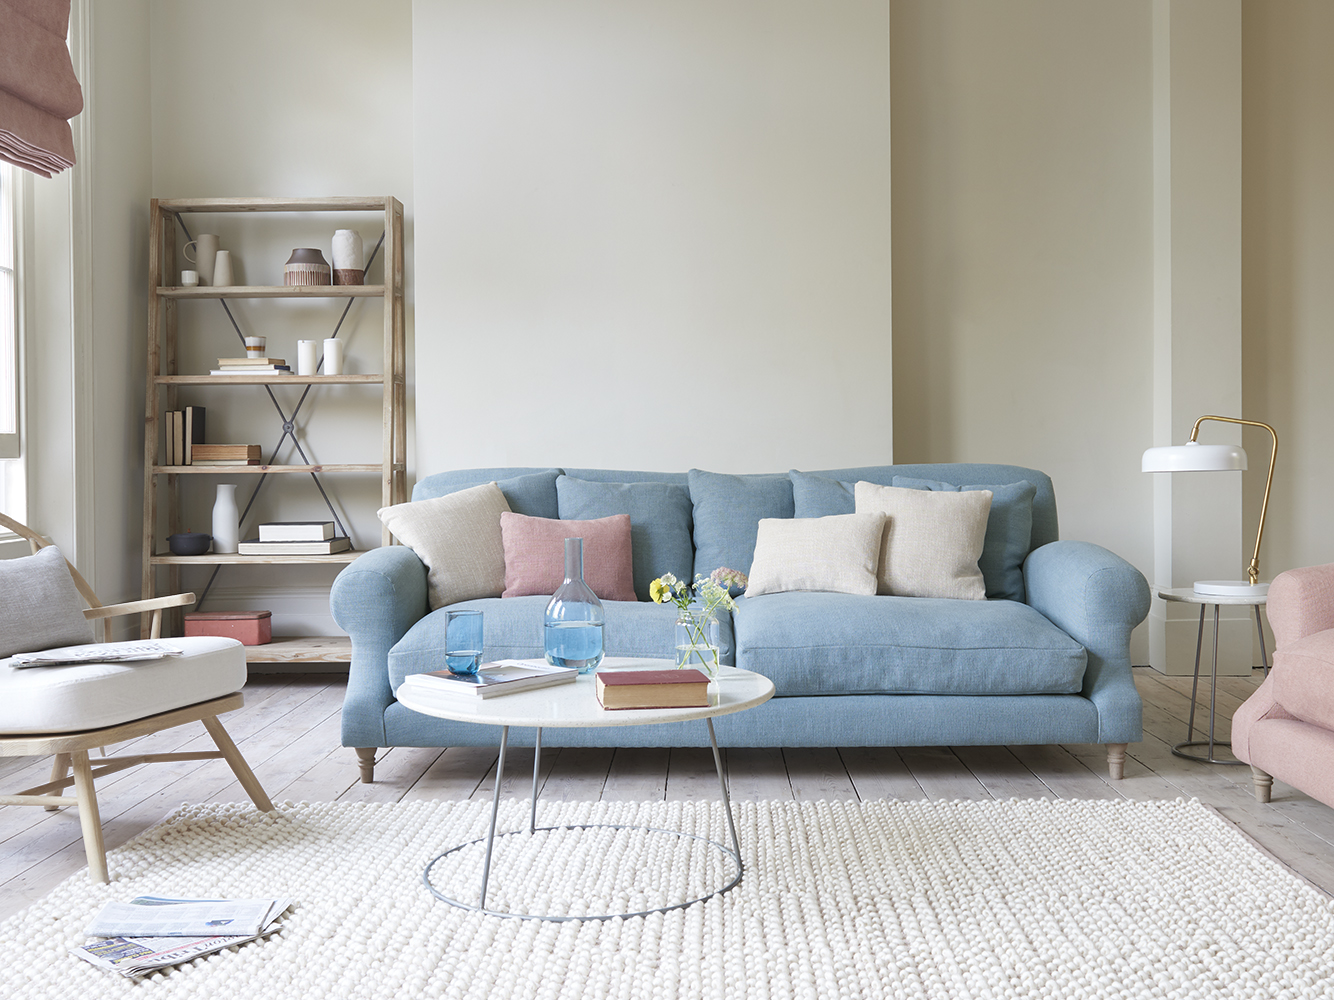 385183-crumpet-scatter-back-cushion-sofa